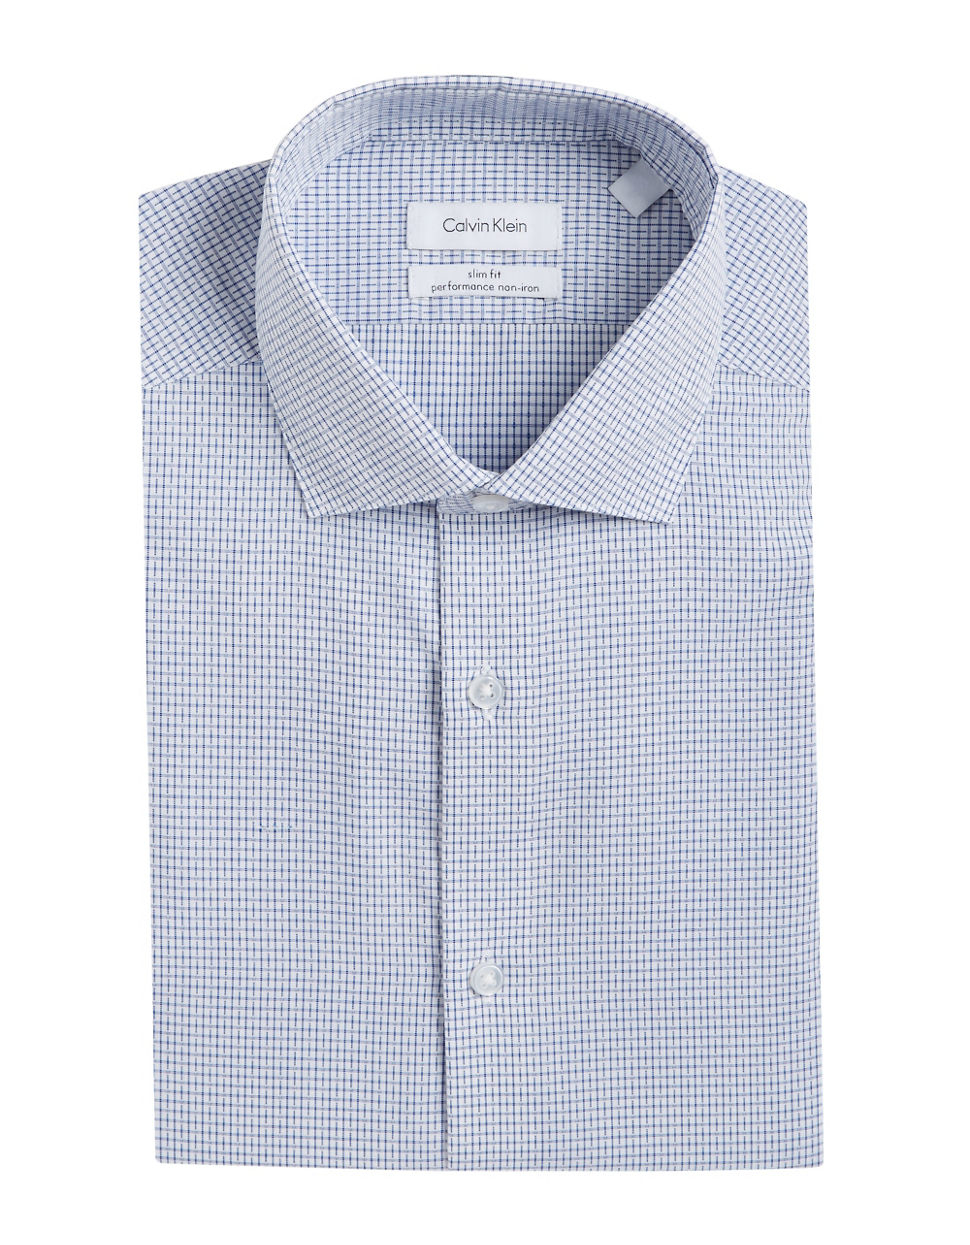 Calvin klein slim fit dress shirt in blue for men lyst for Calvin klein athletic fit dress shirt